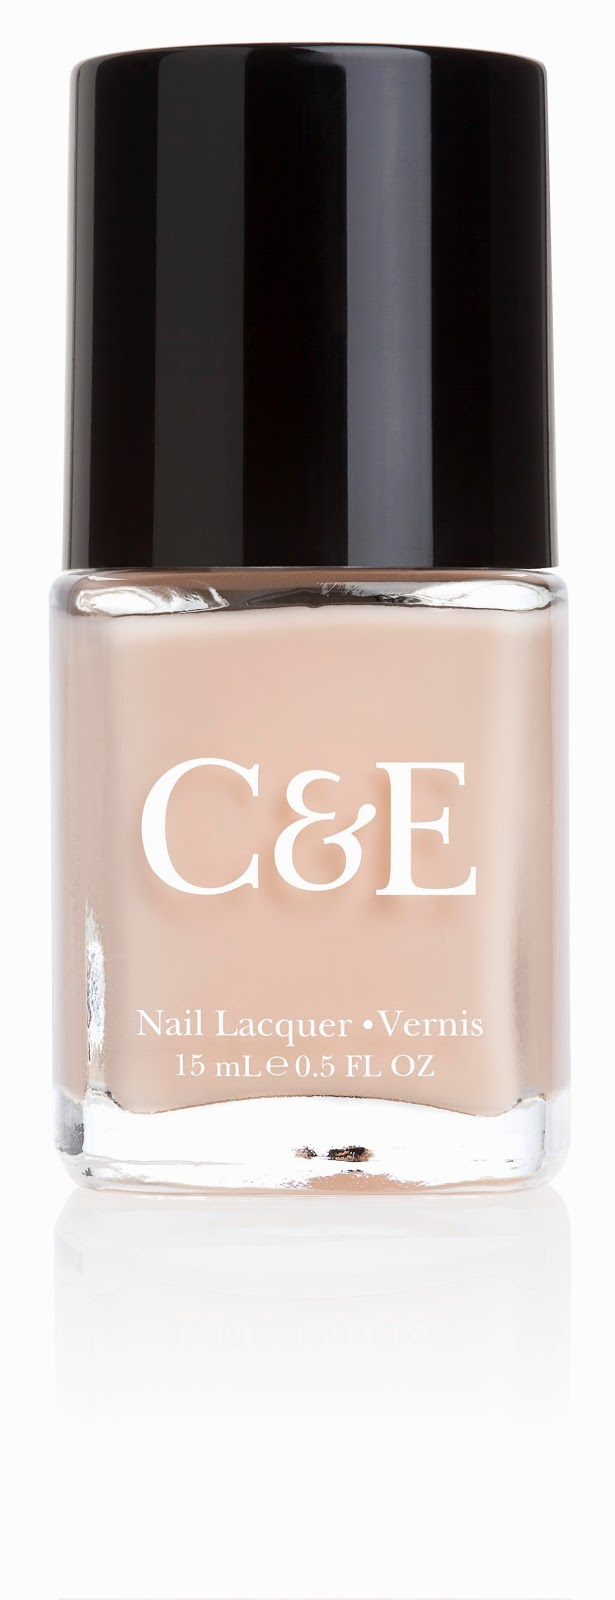 Crabtree & Evelyn NUD-EST Collection - Polish Galore